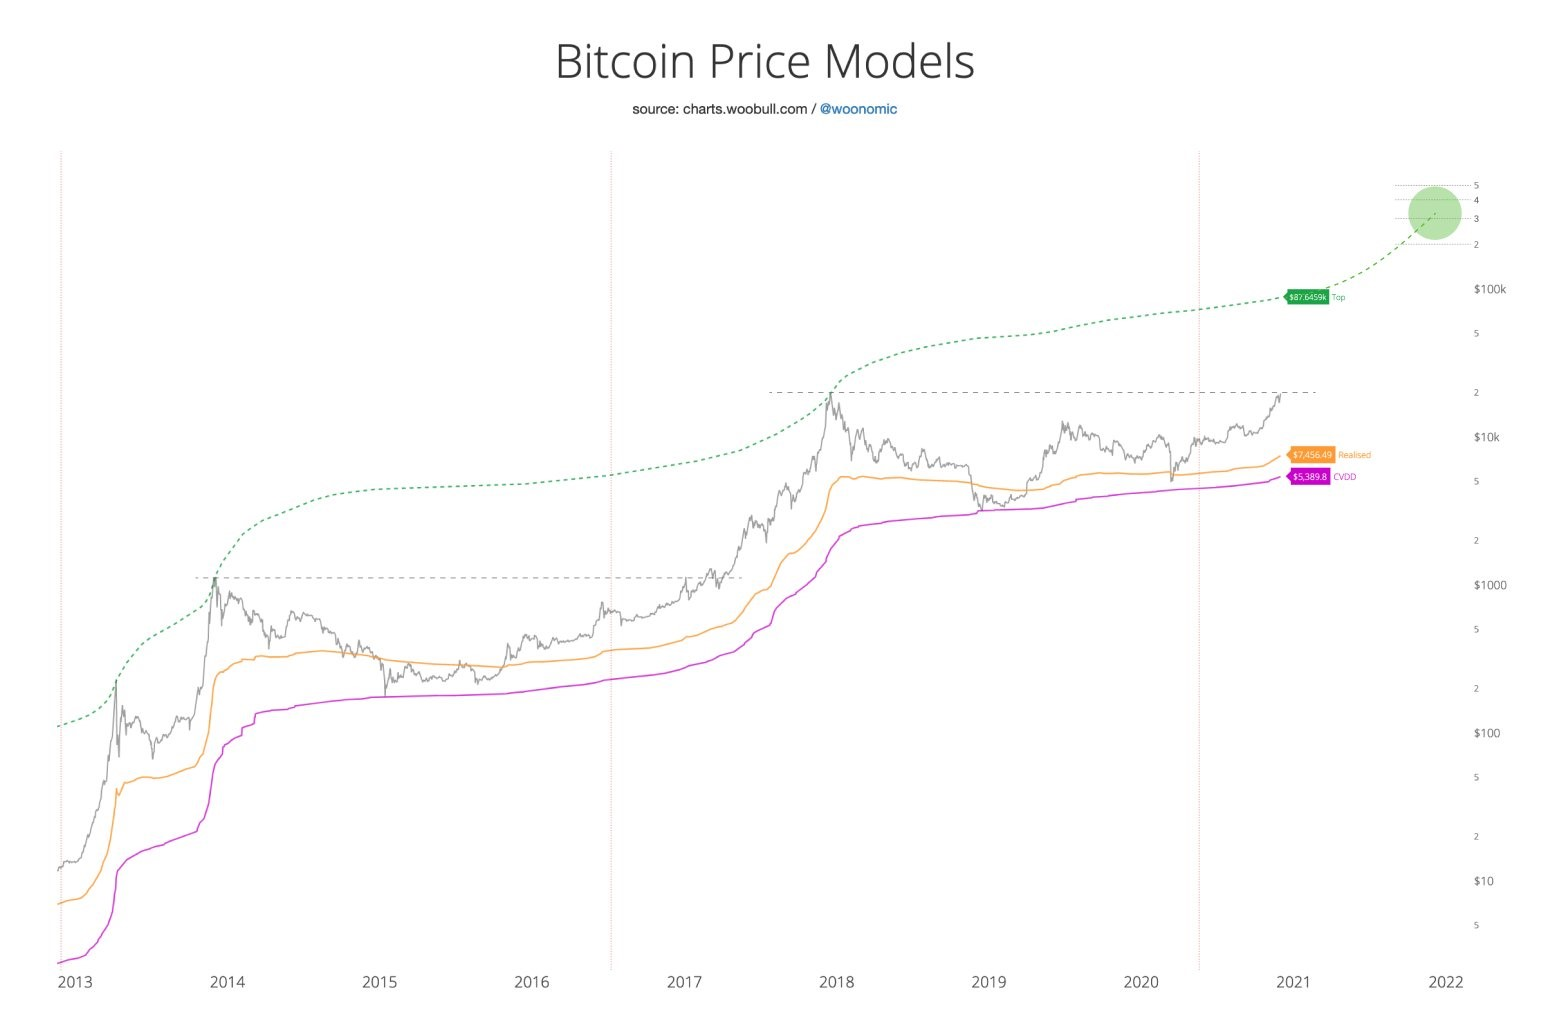 BTC Price Hitting New Highs